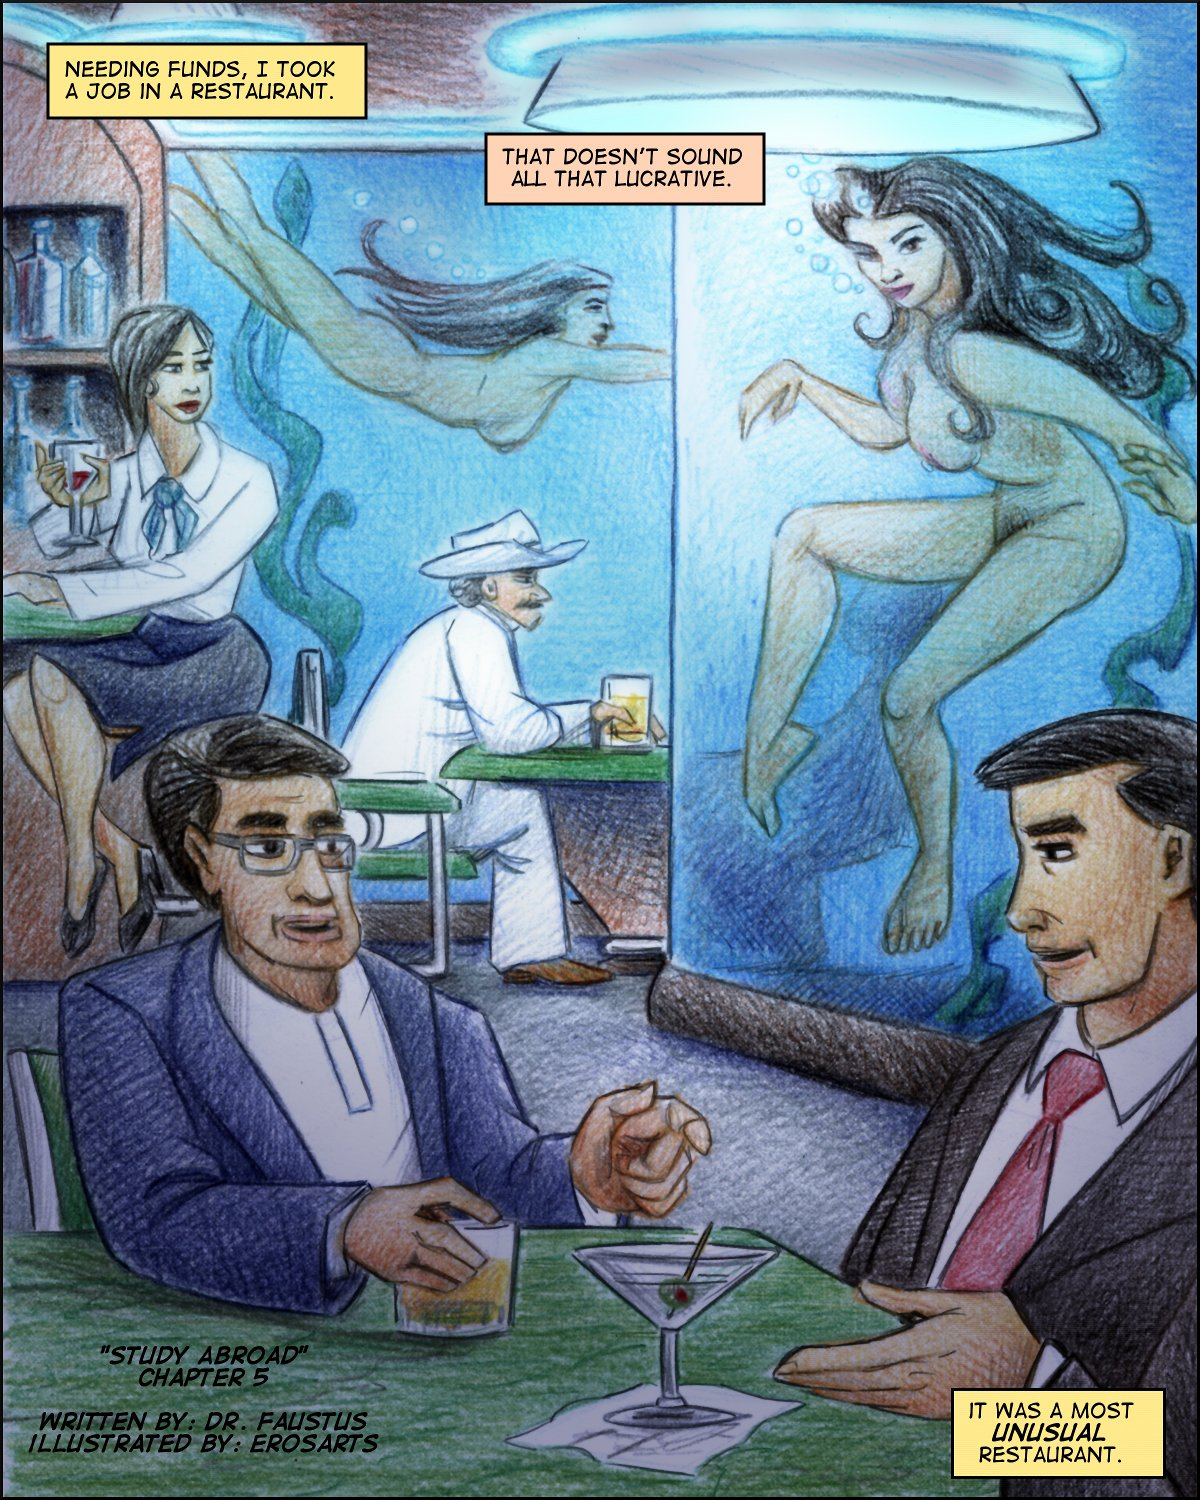 The restaurant is a naked mermaid bar!